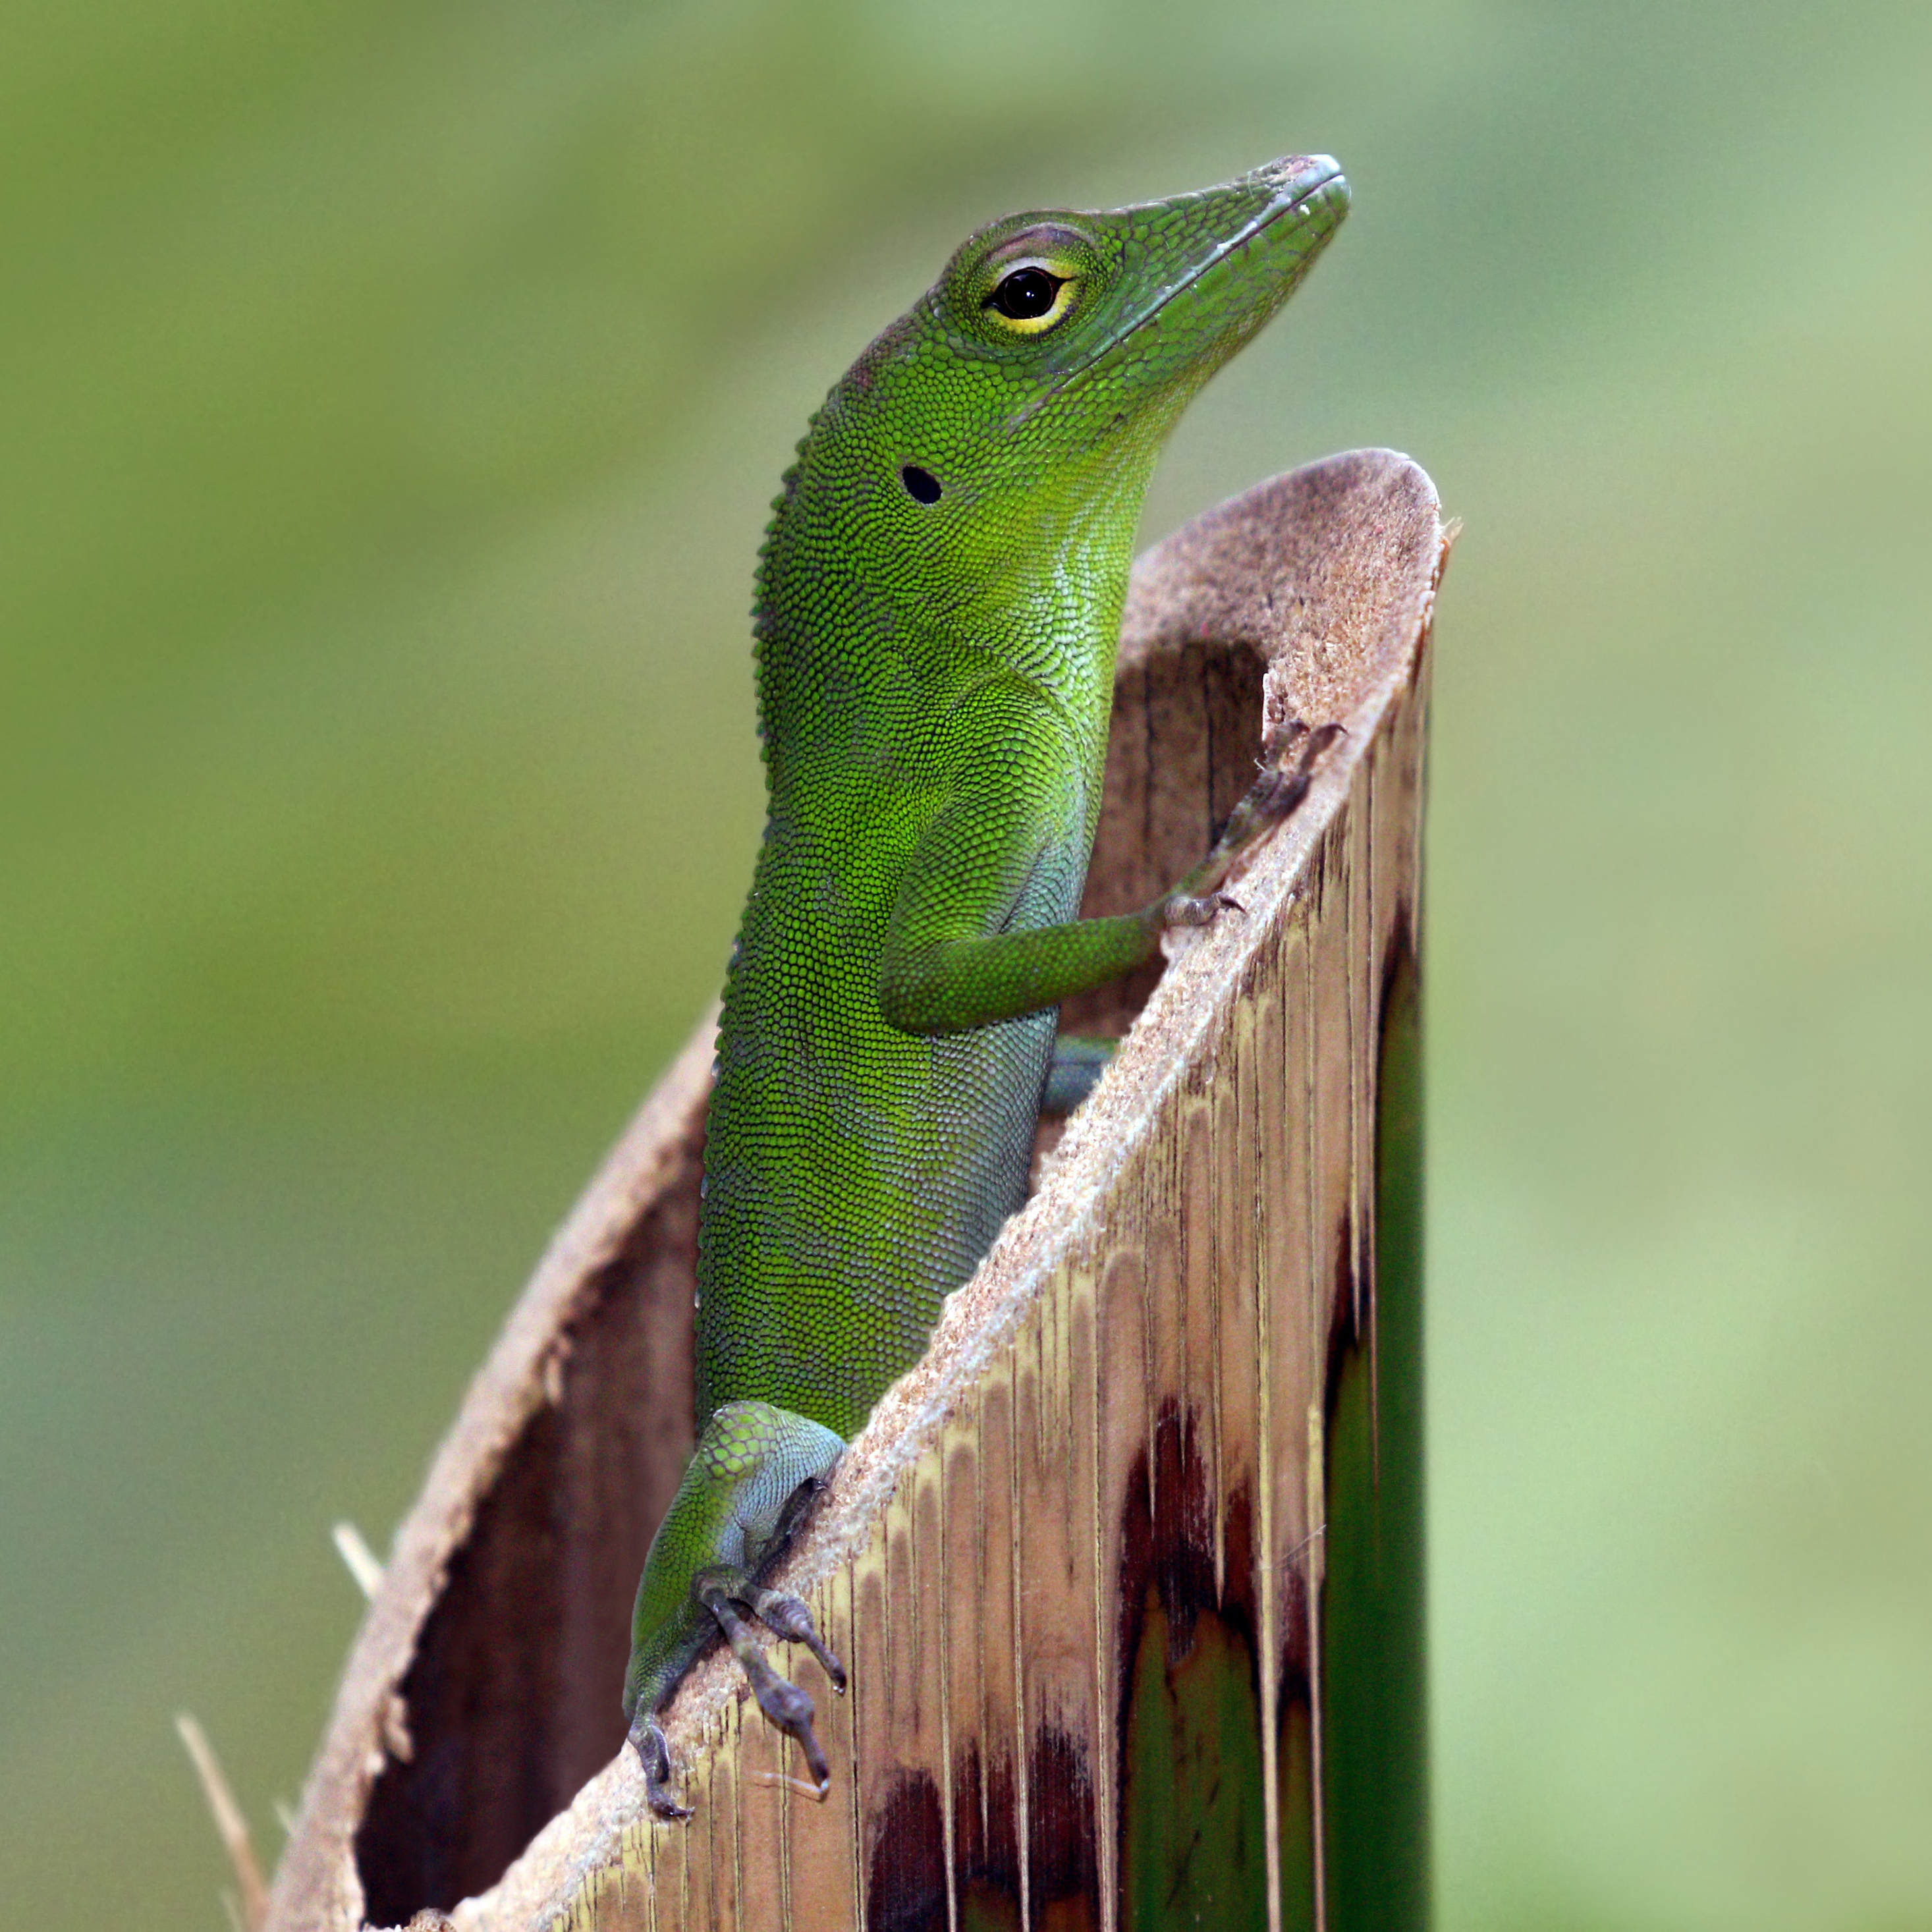 Anole svg #10, Download drawings